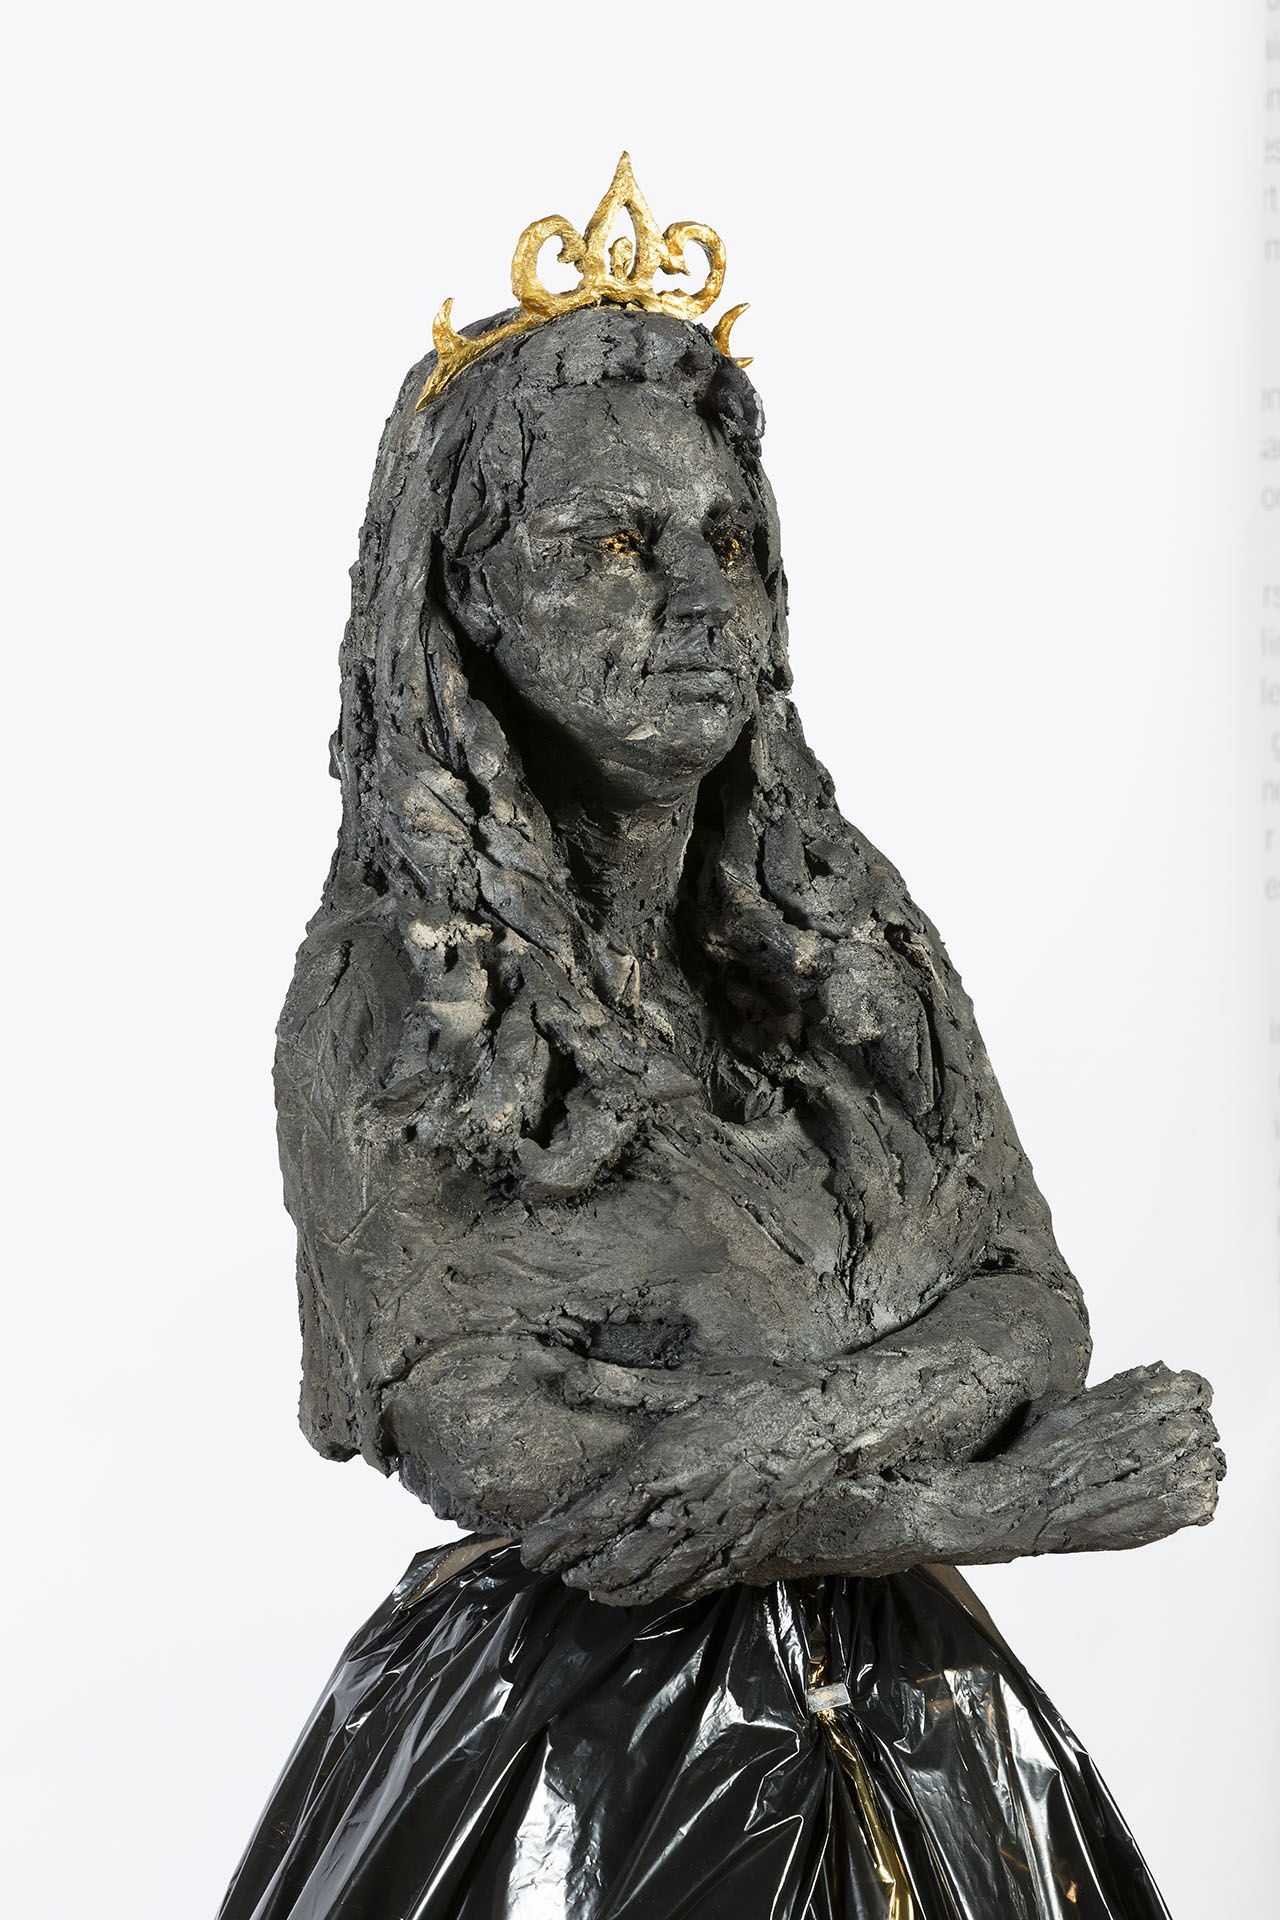 Princesse Sara,Cécile Raynal,Sculpture contemporaine, detail 2